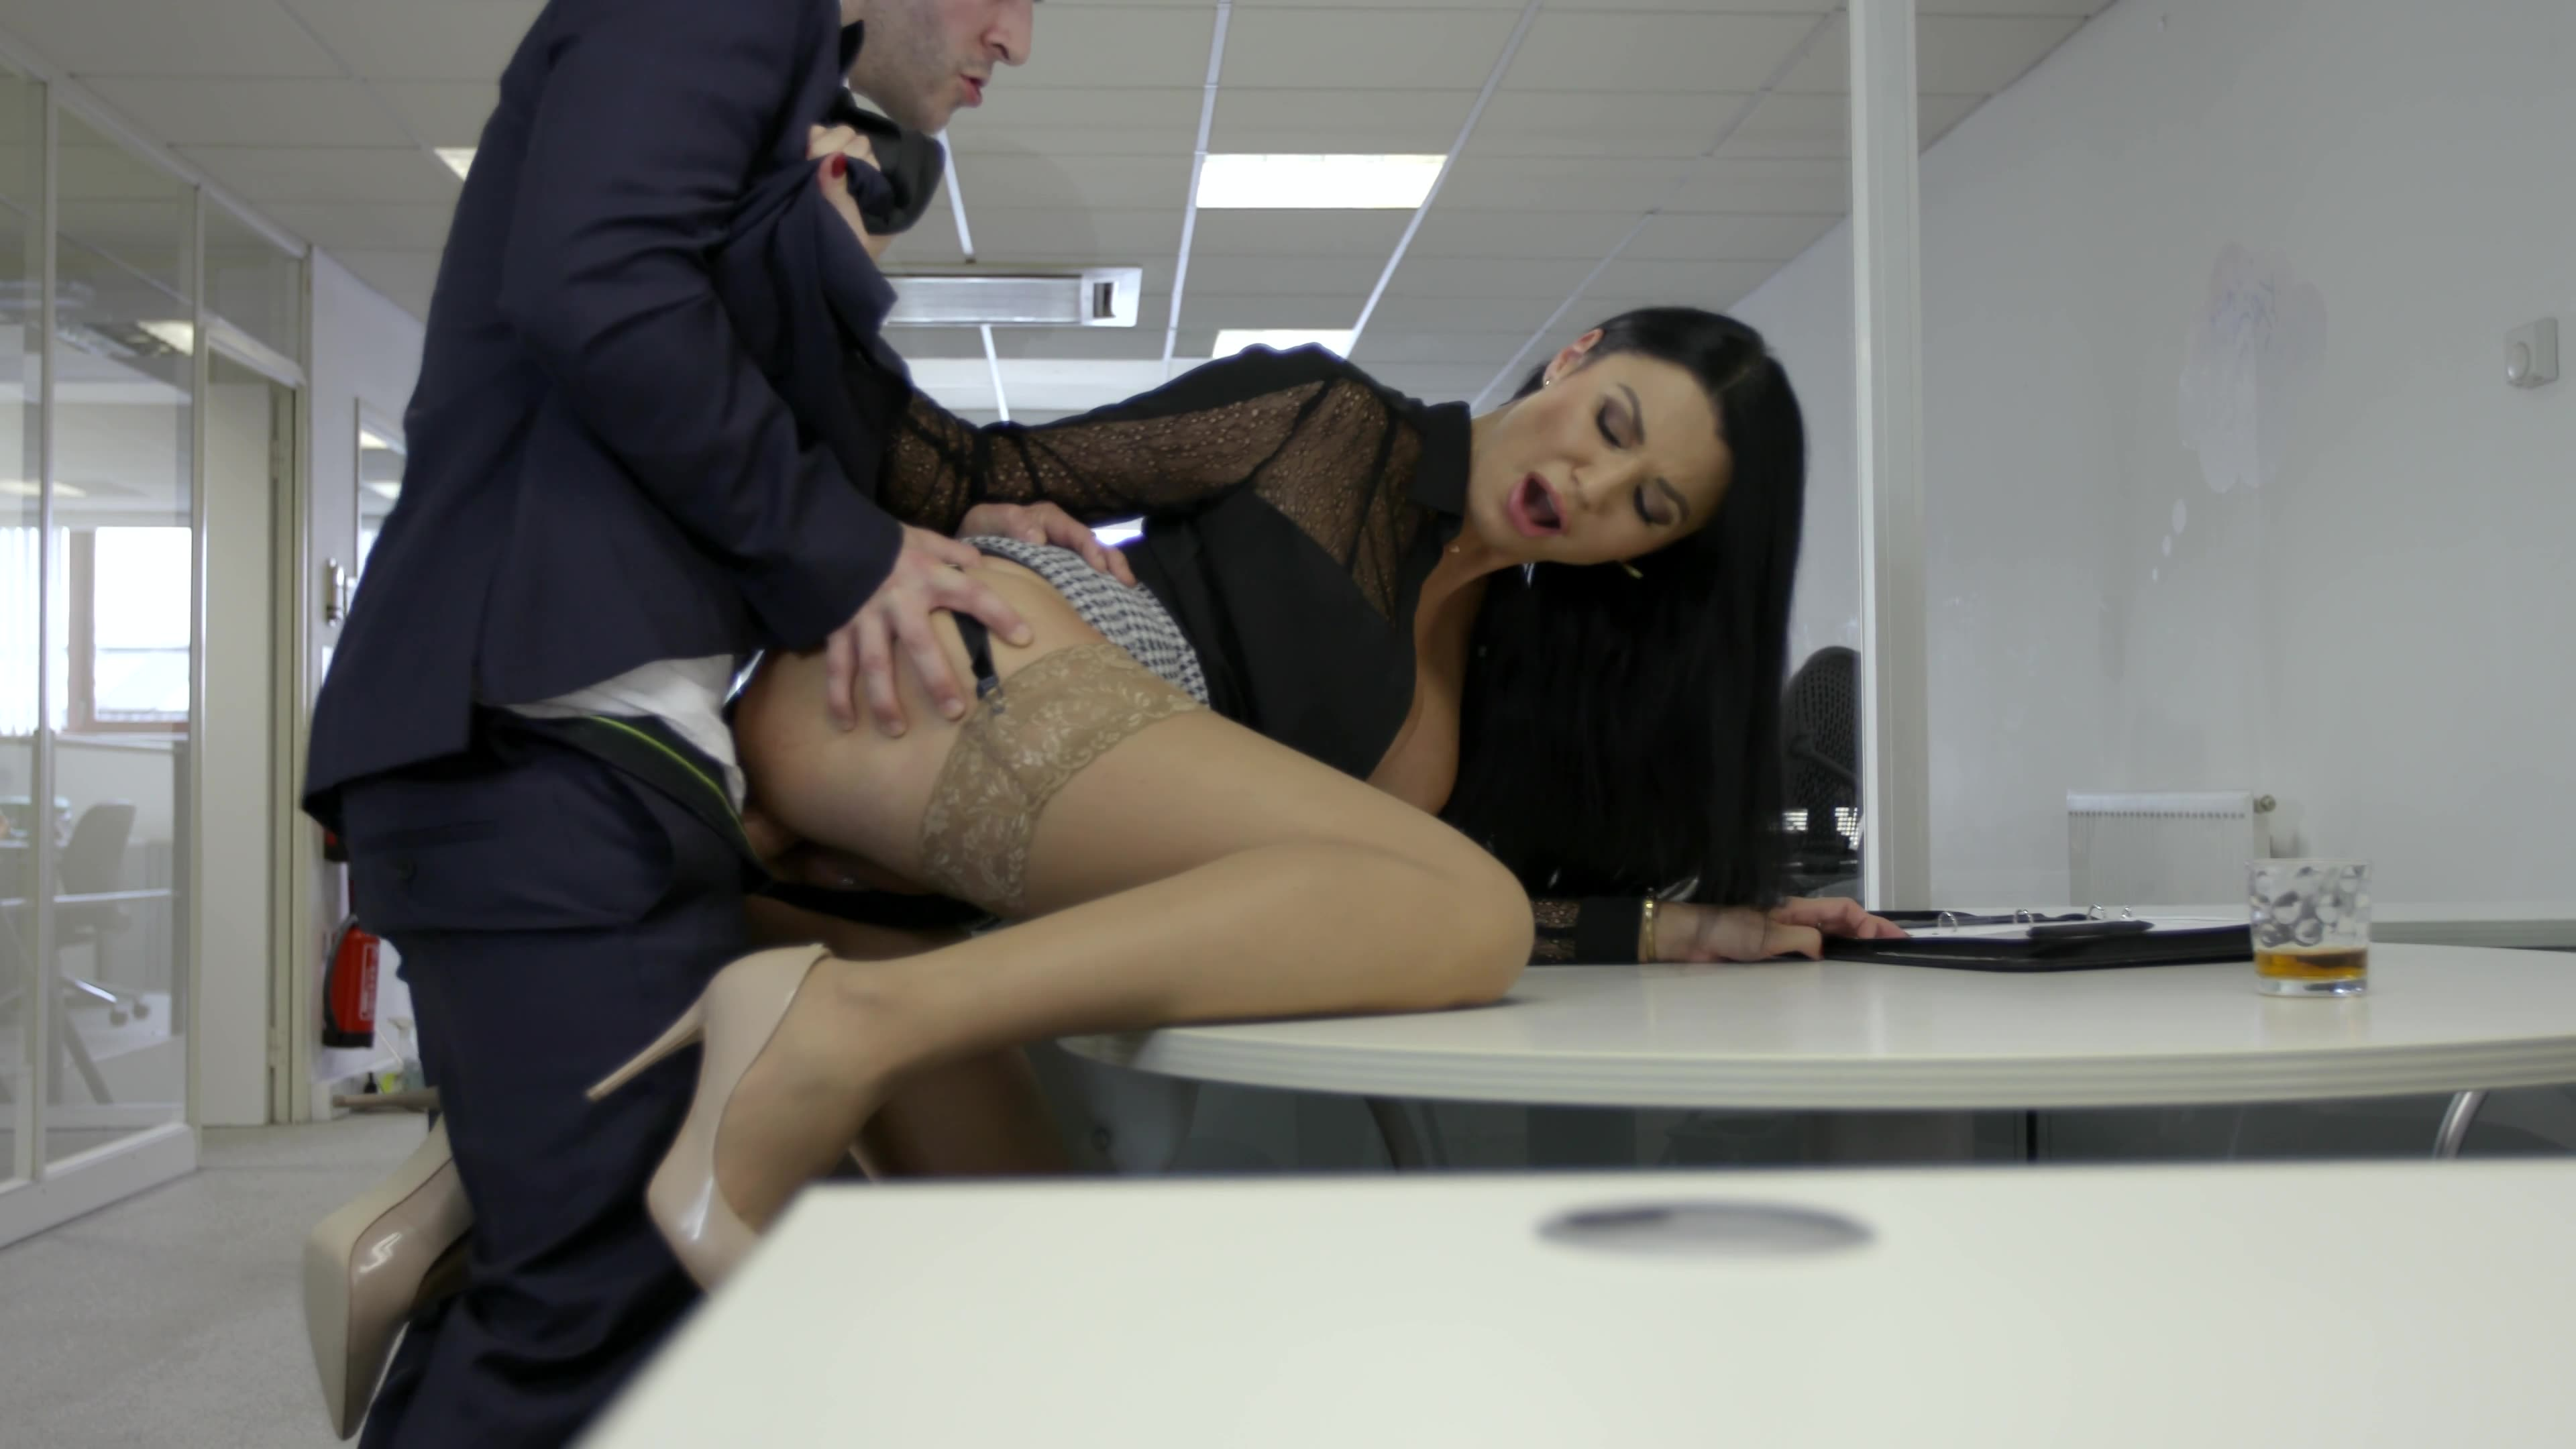 Sexy banker gets a hard fuck and huge facial during interview for gay porn